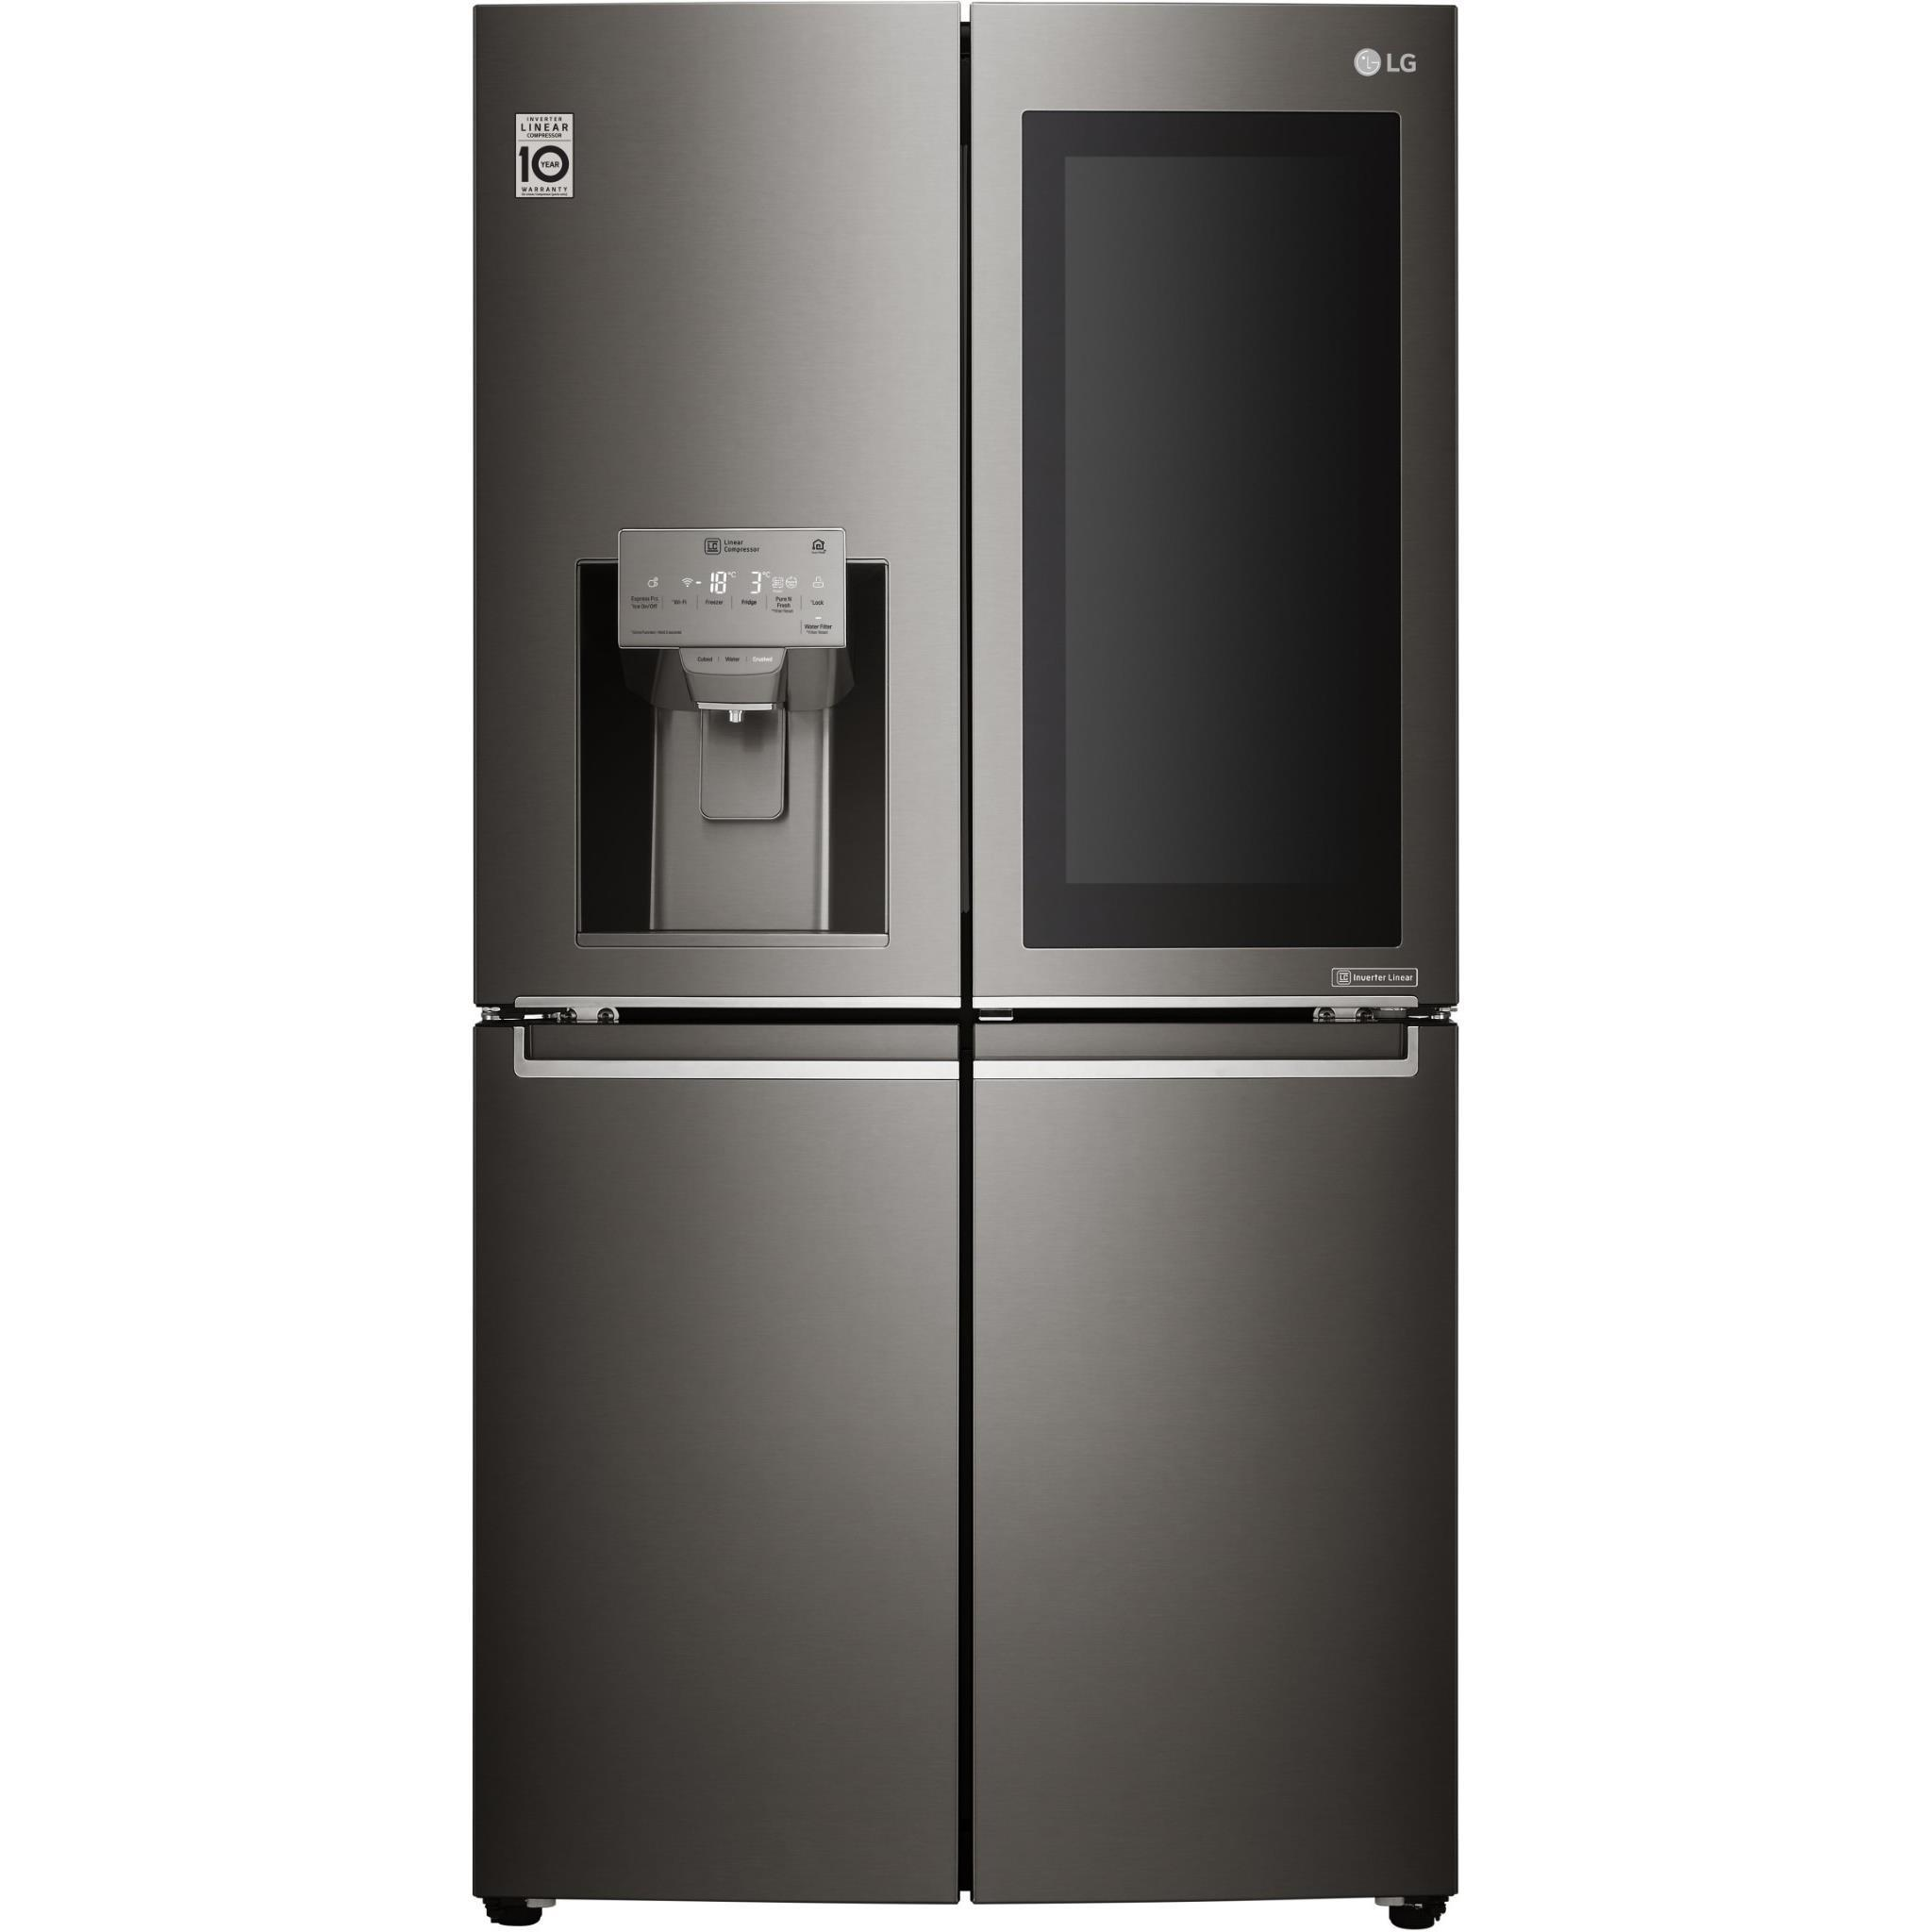 LG GF-V708BSL Door-in-Door French Door Fridge (Black S/Steel)